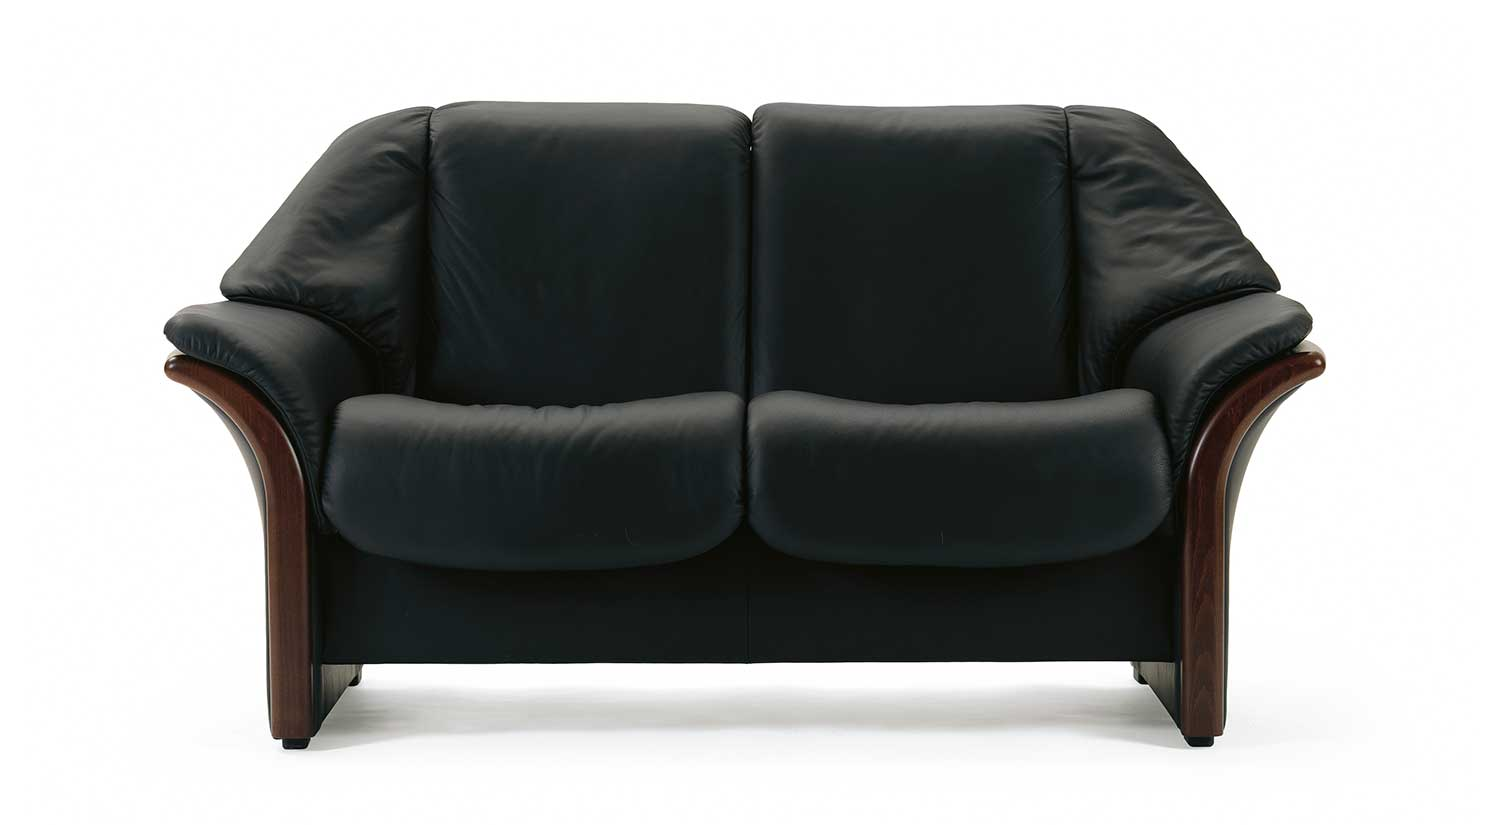 Eldorado Stressless Lowback Loveseat